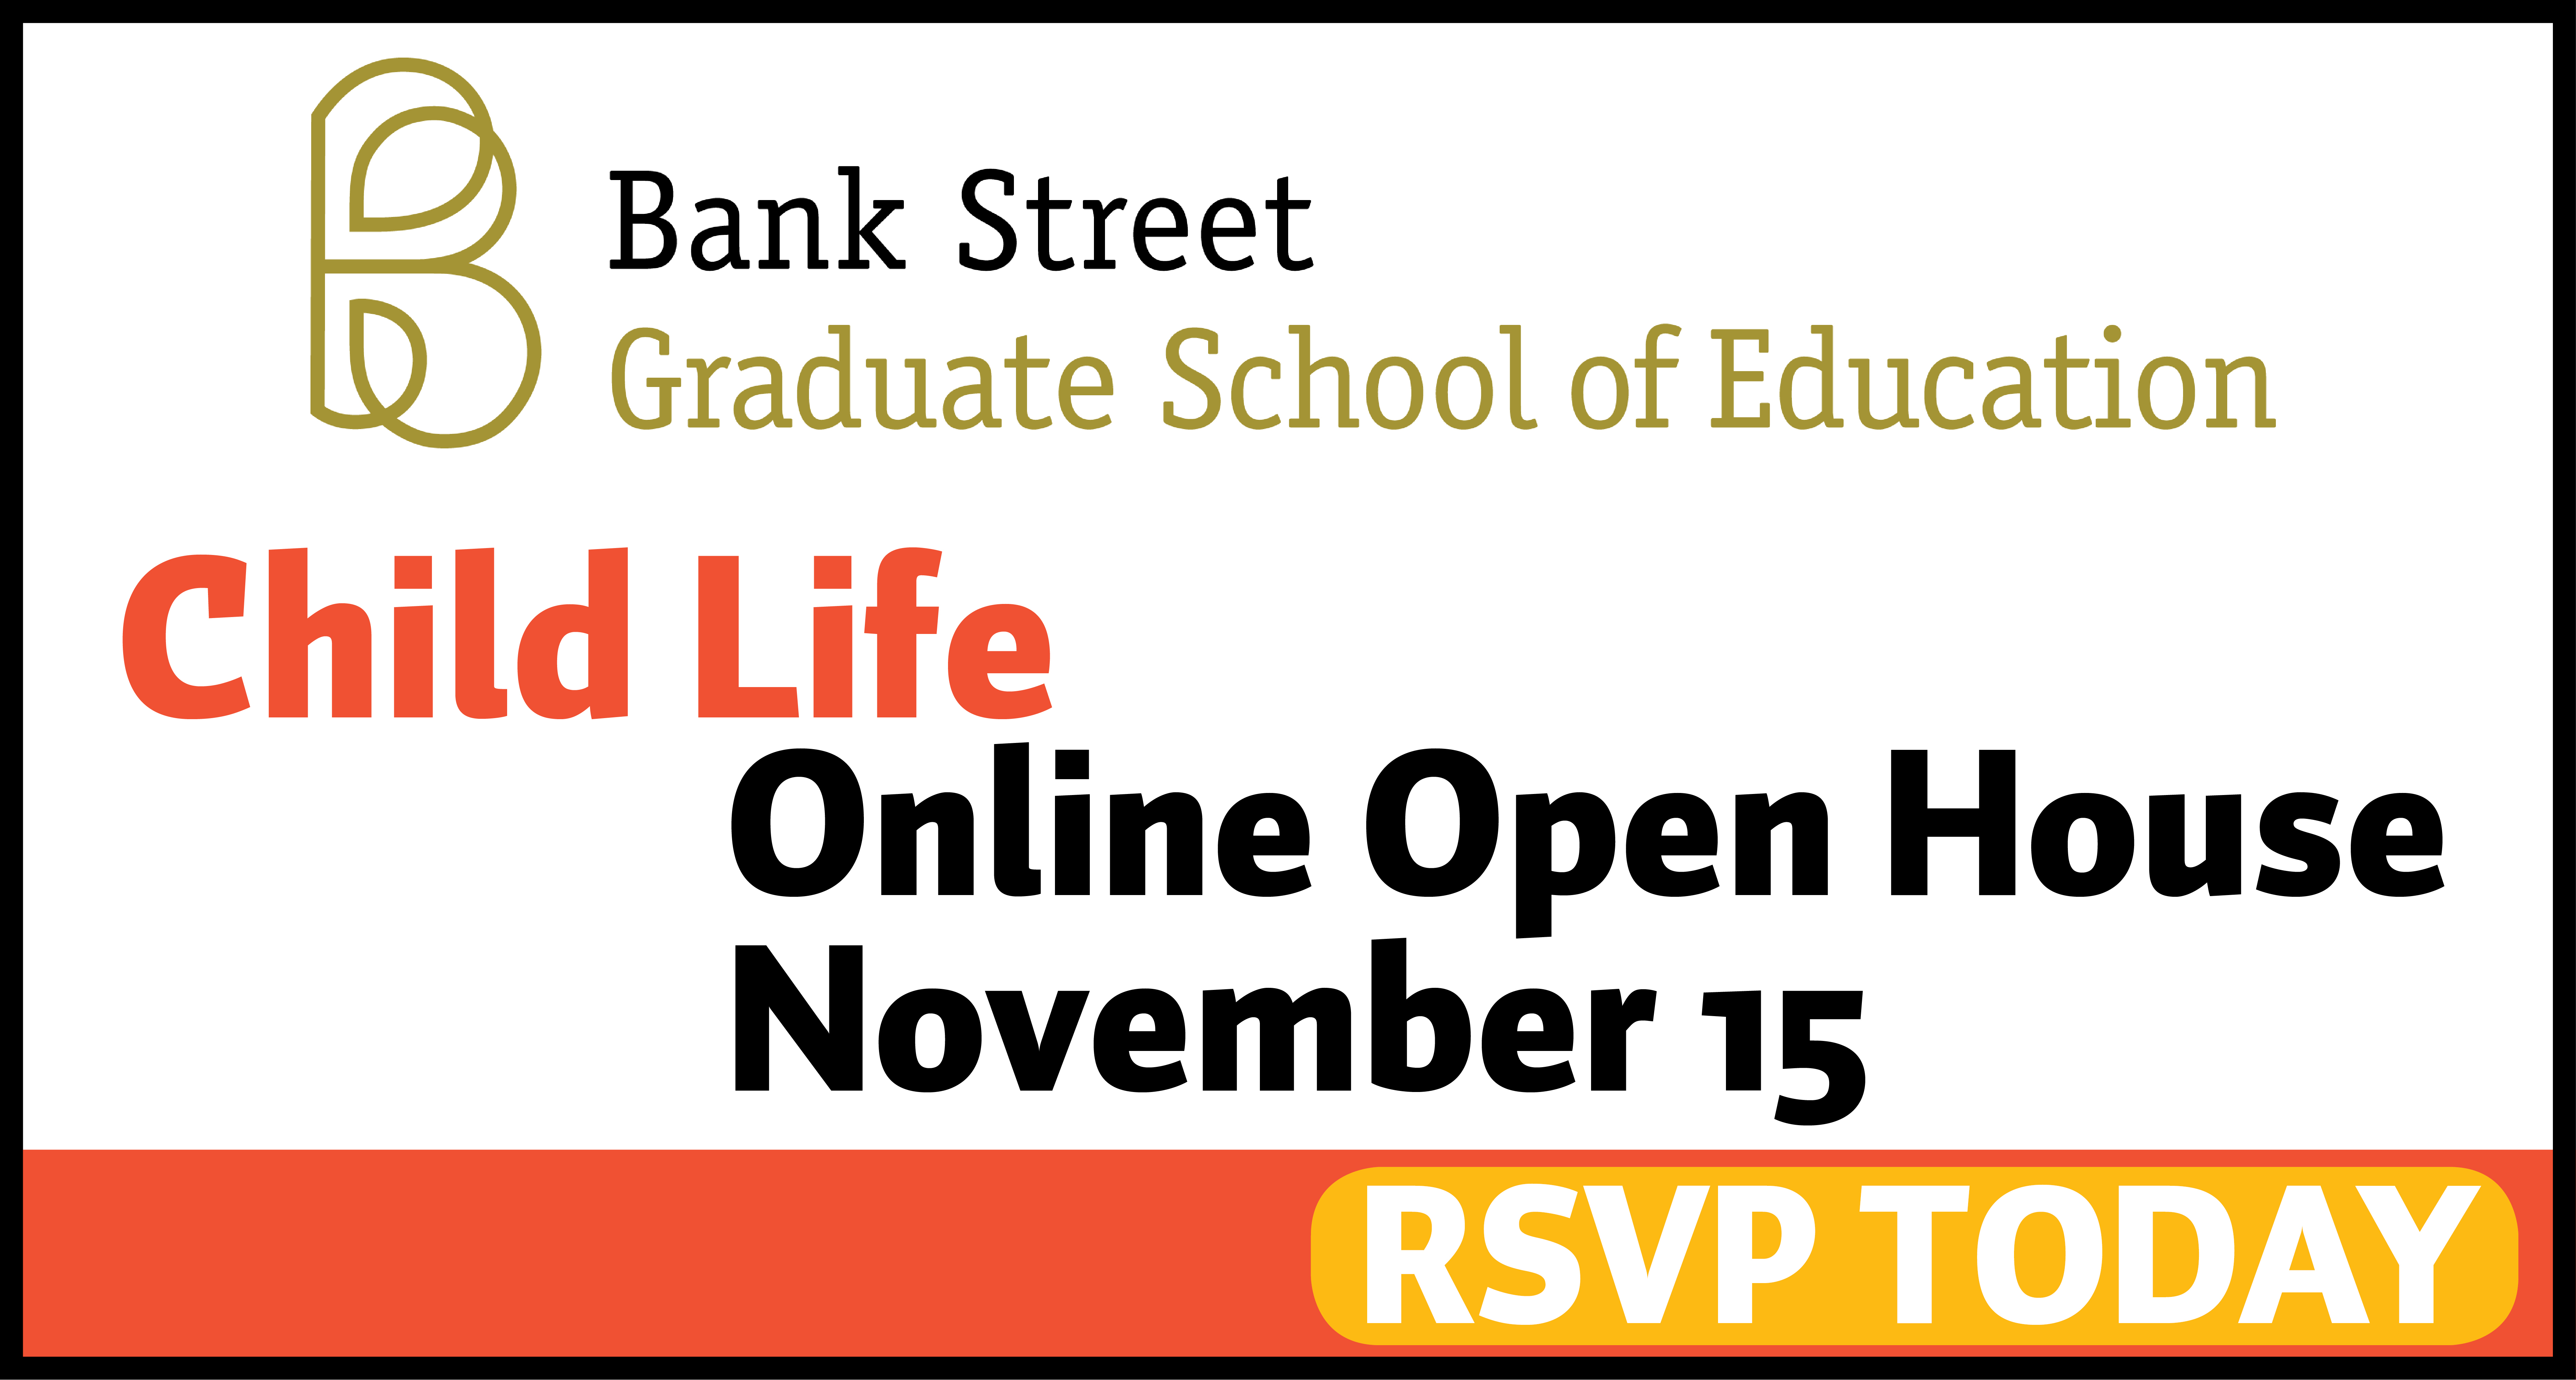 Child Life Online Open House